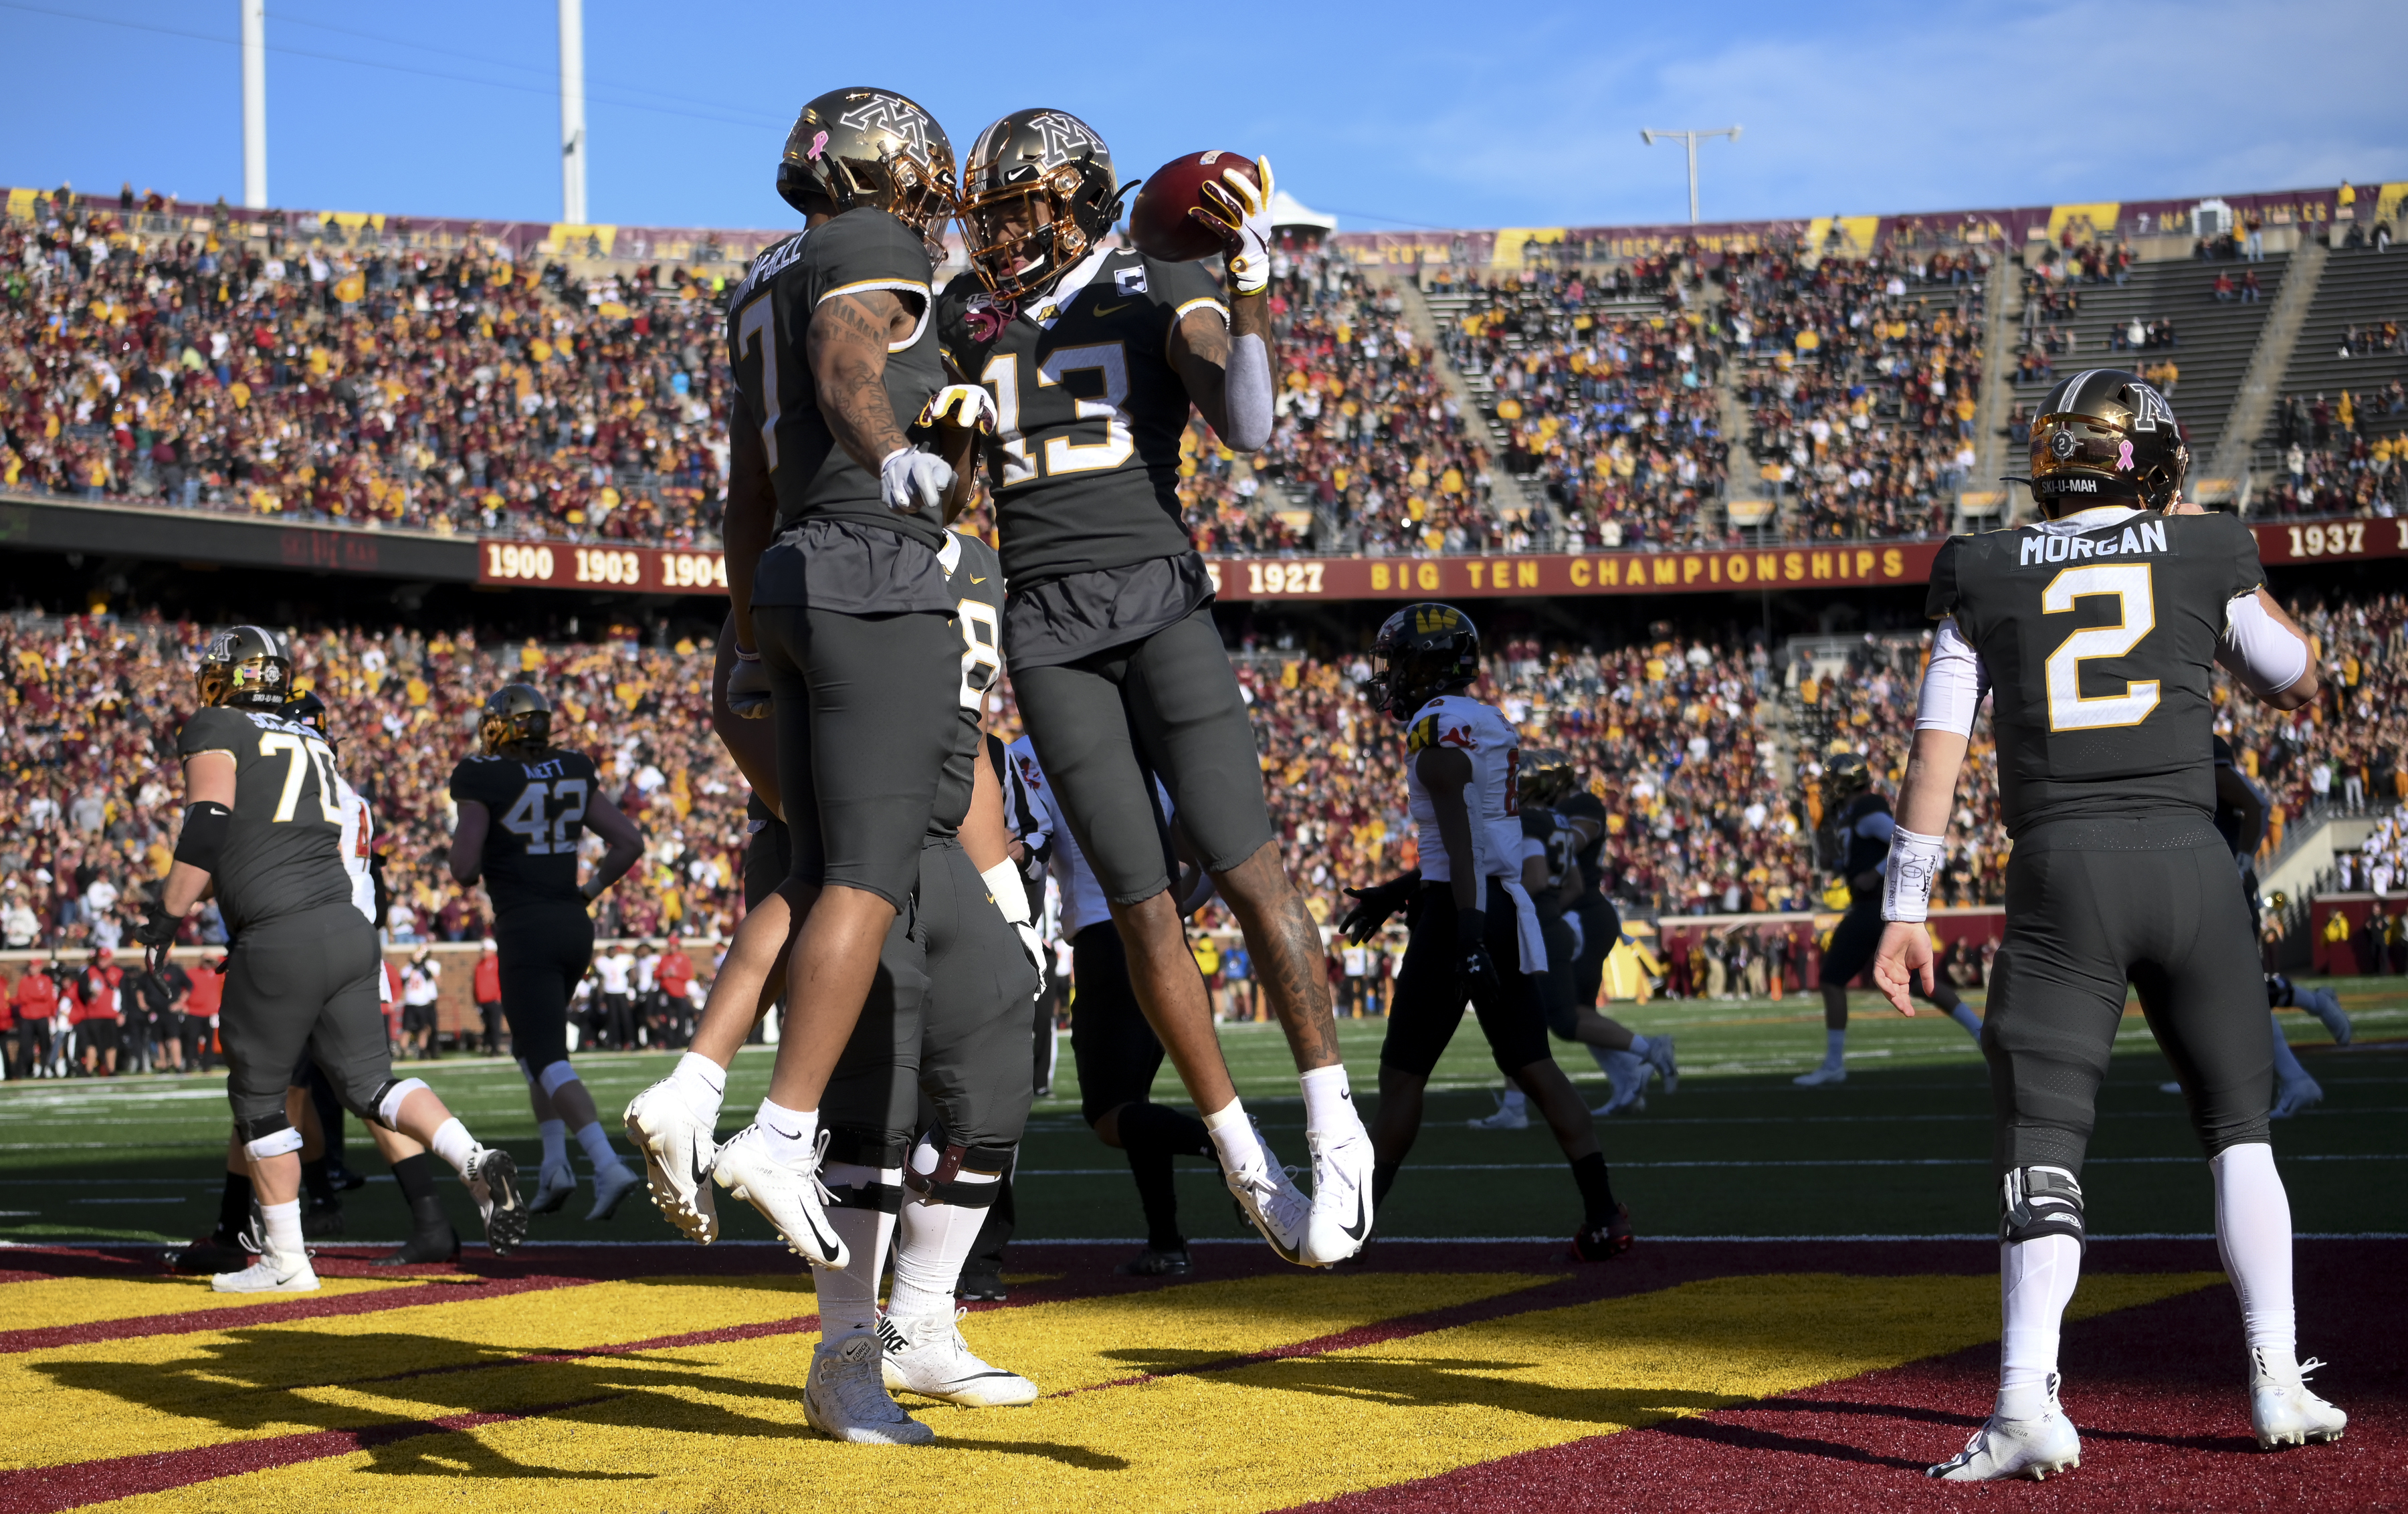 Scoggins: 8-0 Gophers vs. 8-0 Penn State. Who could ask for anything more?